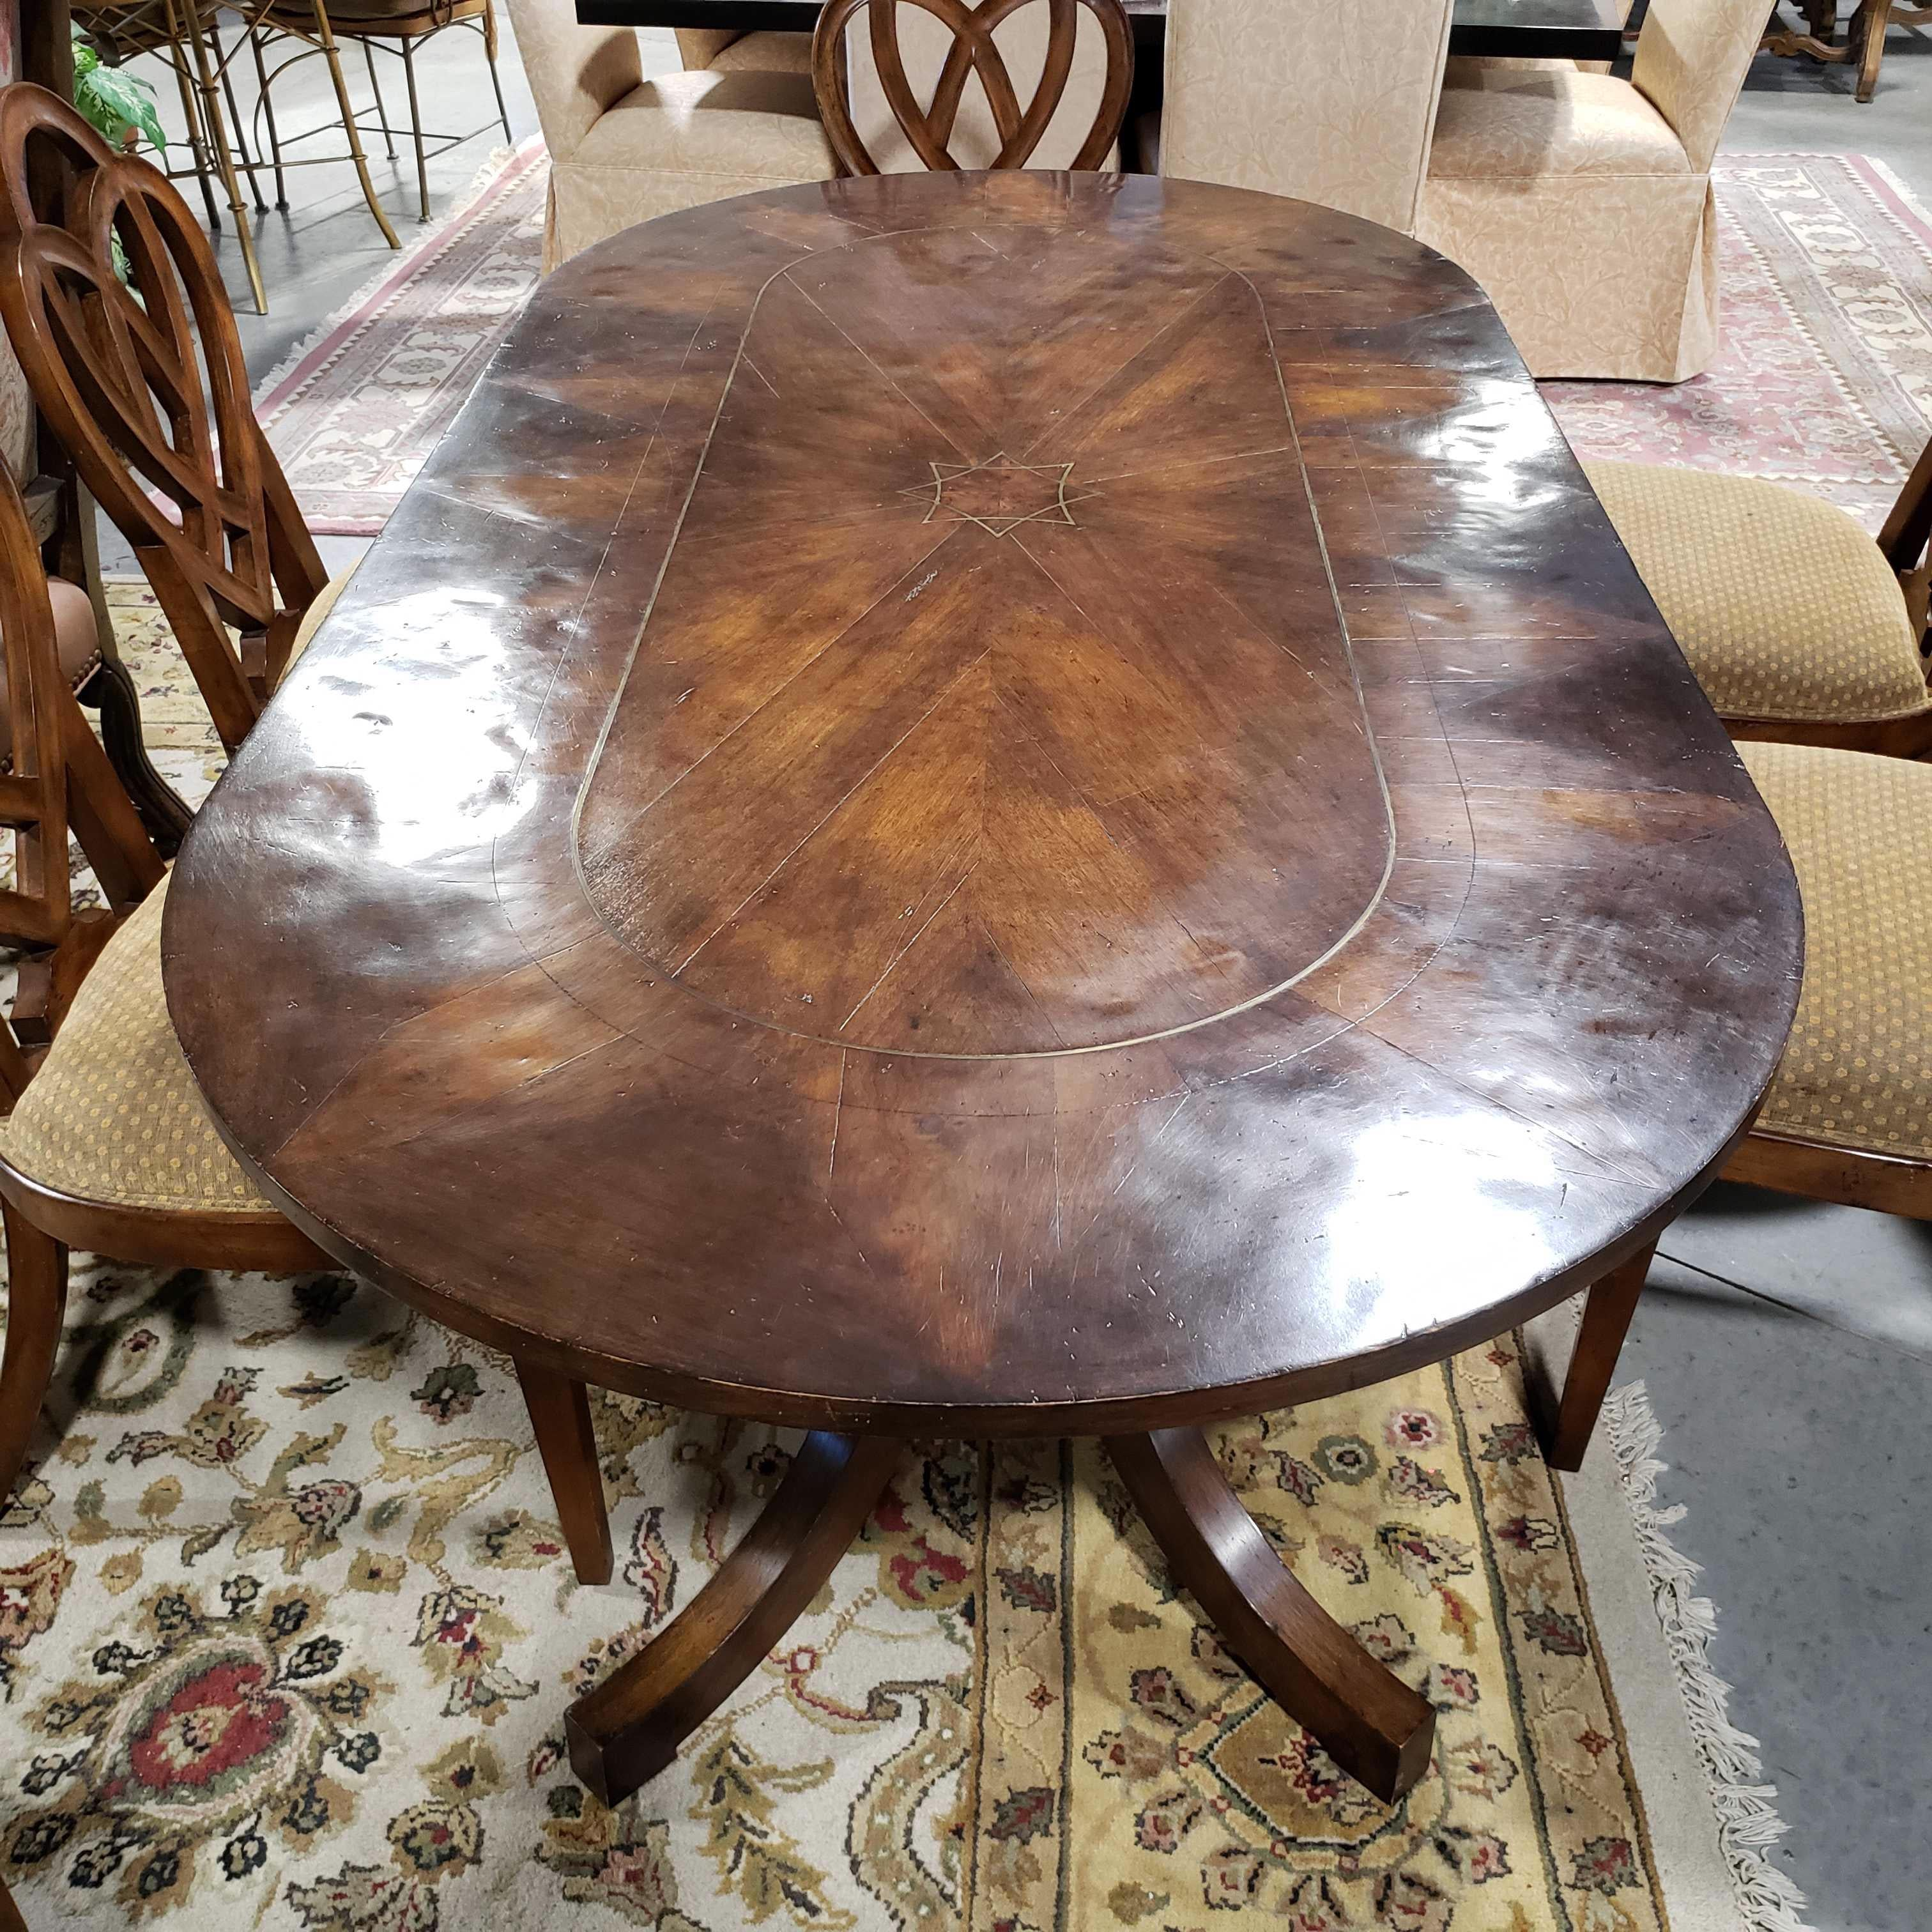 "84""x 42""x 29"" Oval Inlay Brass Star and Wood Top Table with 6 Carved Heart and Upholstered Chairs Dining Set"